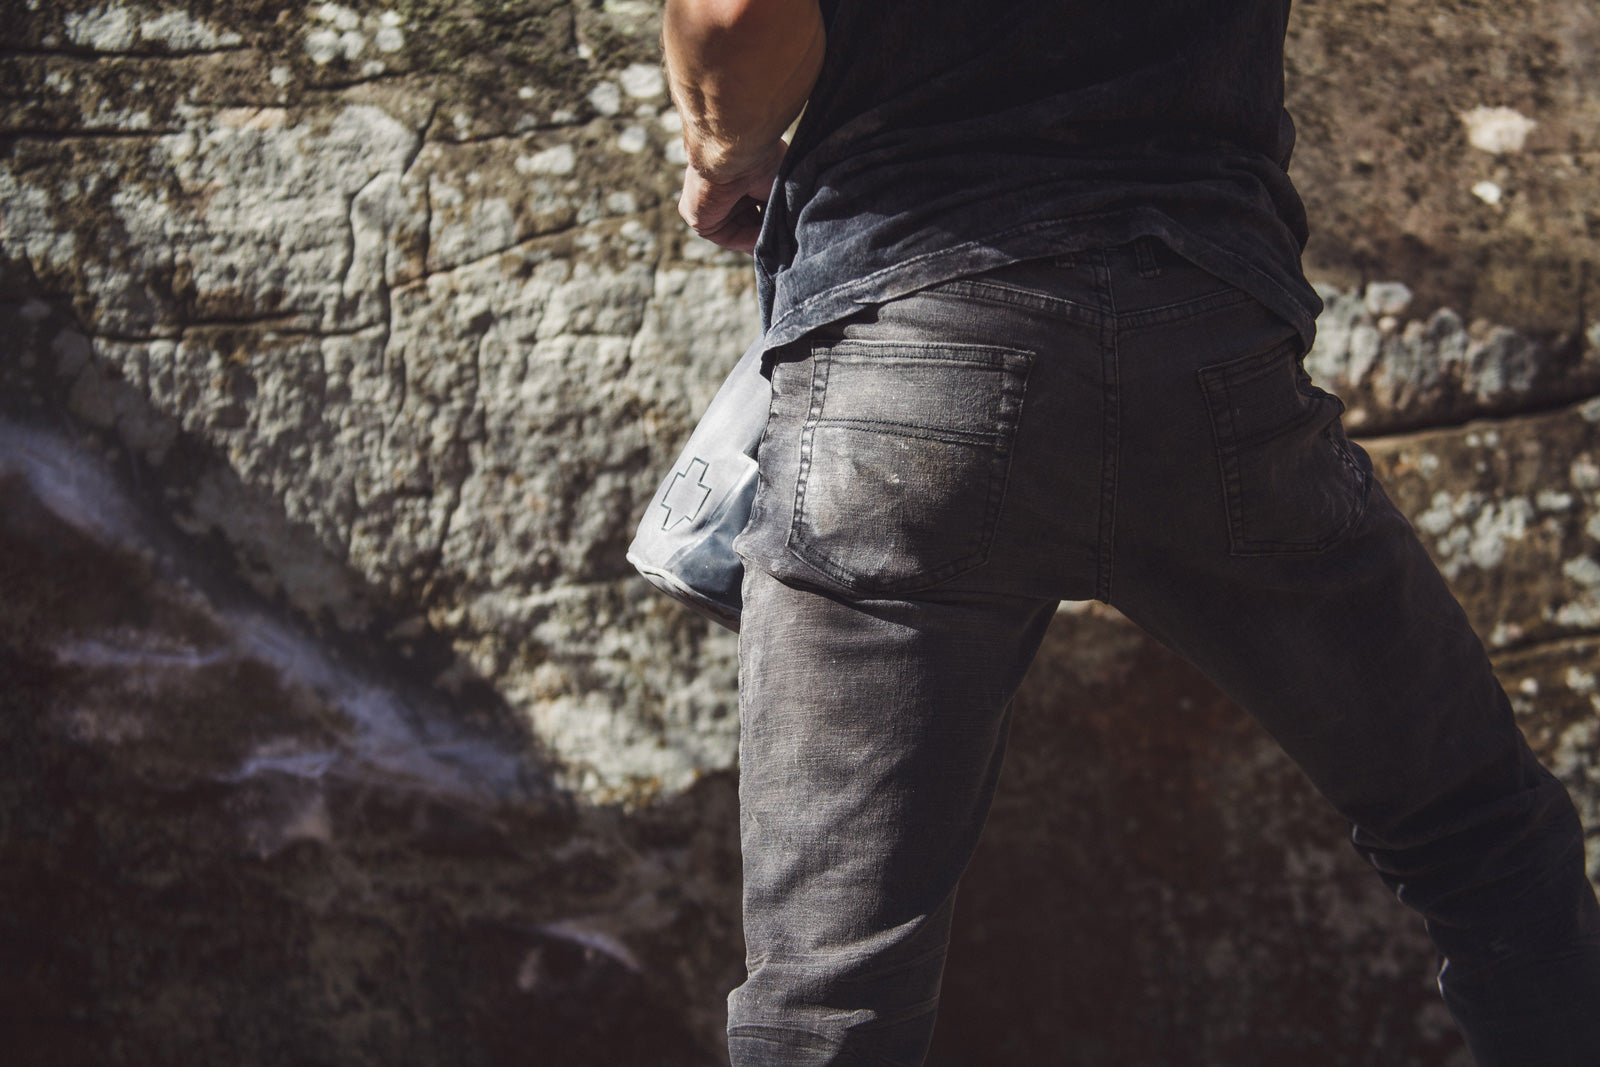 men's so ill climbing denim jeans tight shot of backside